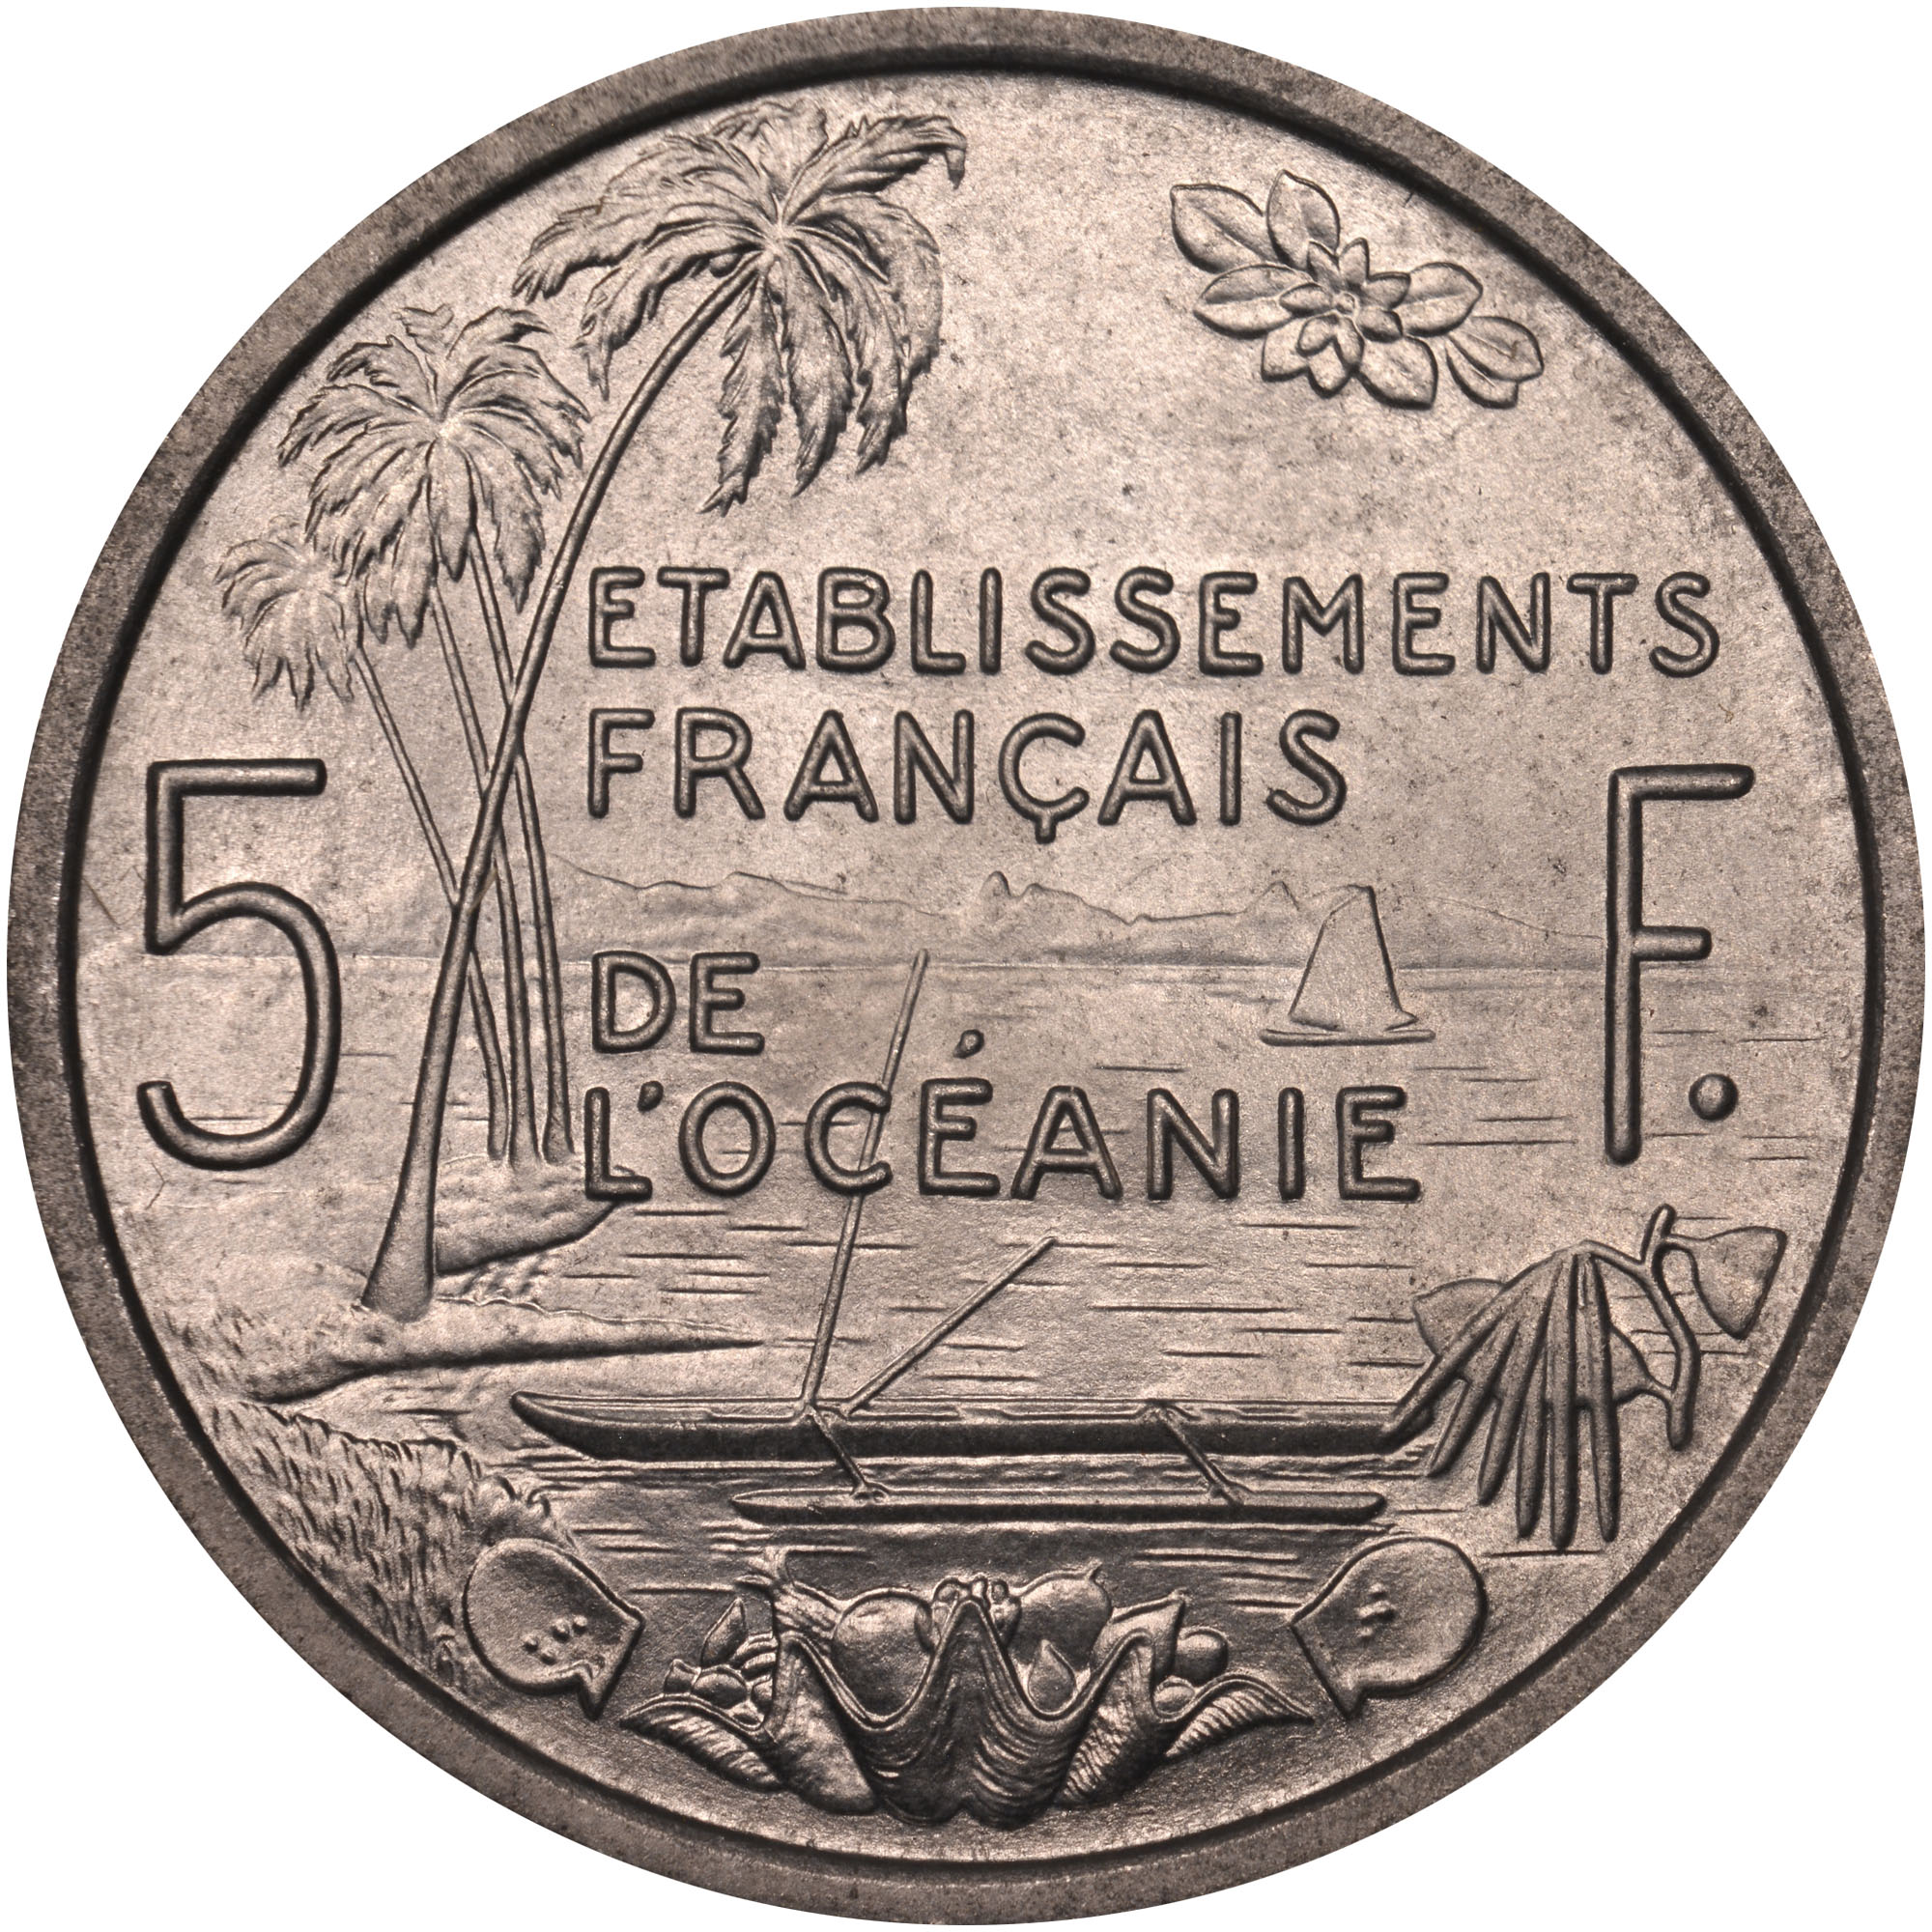 French Oceania 5 Francs reverse